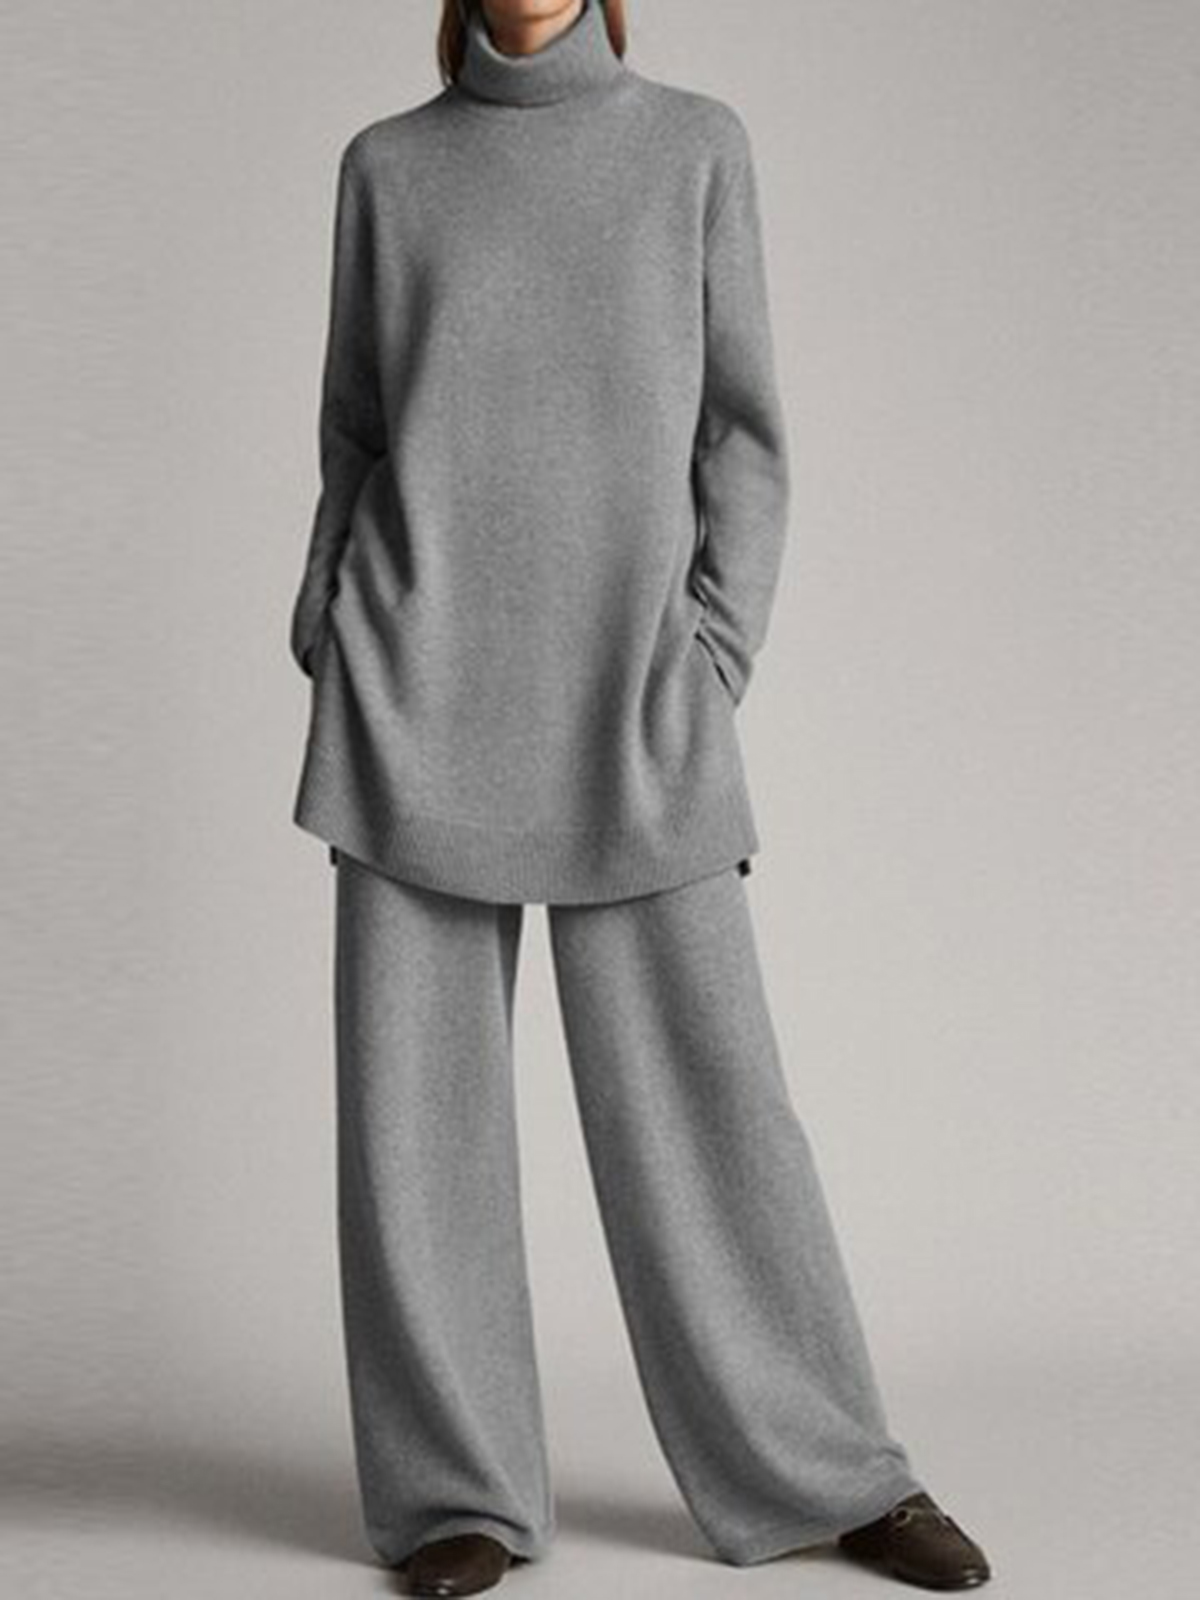 Fashionable Simple Casual Loose Turtleneck Top Pants Knitted Suit